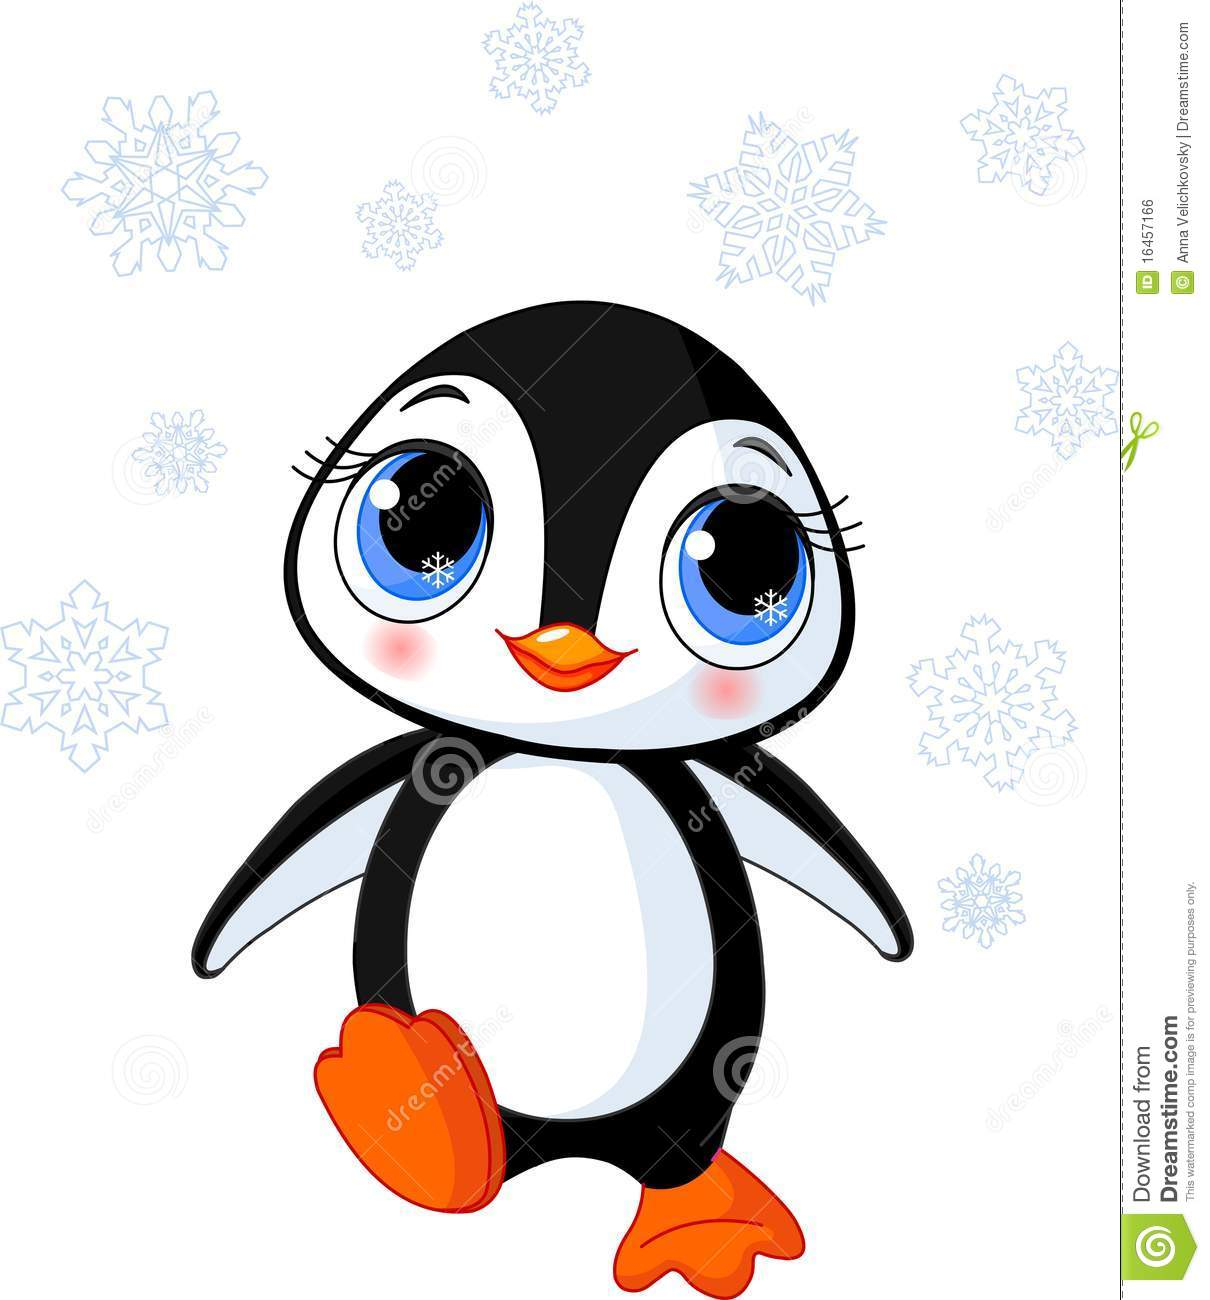 f3a78cc6100 Cute winter penguin stock vector. Illustration of black - 16457166